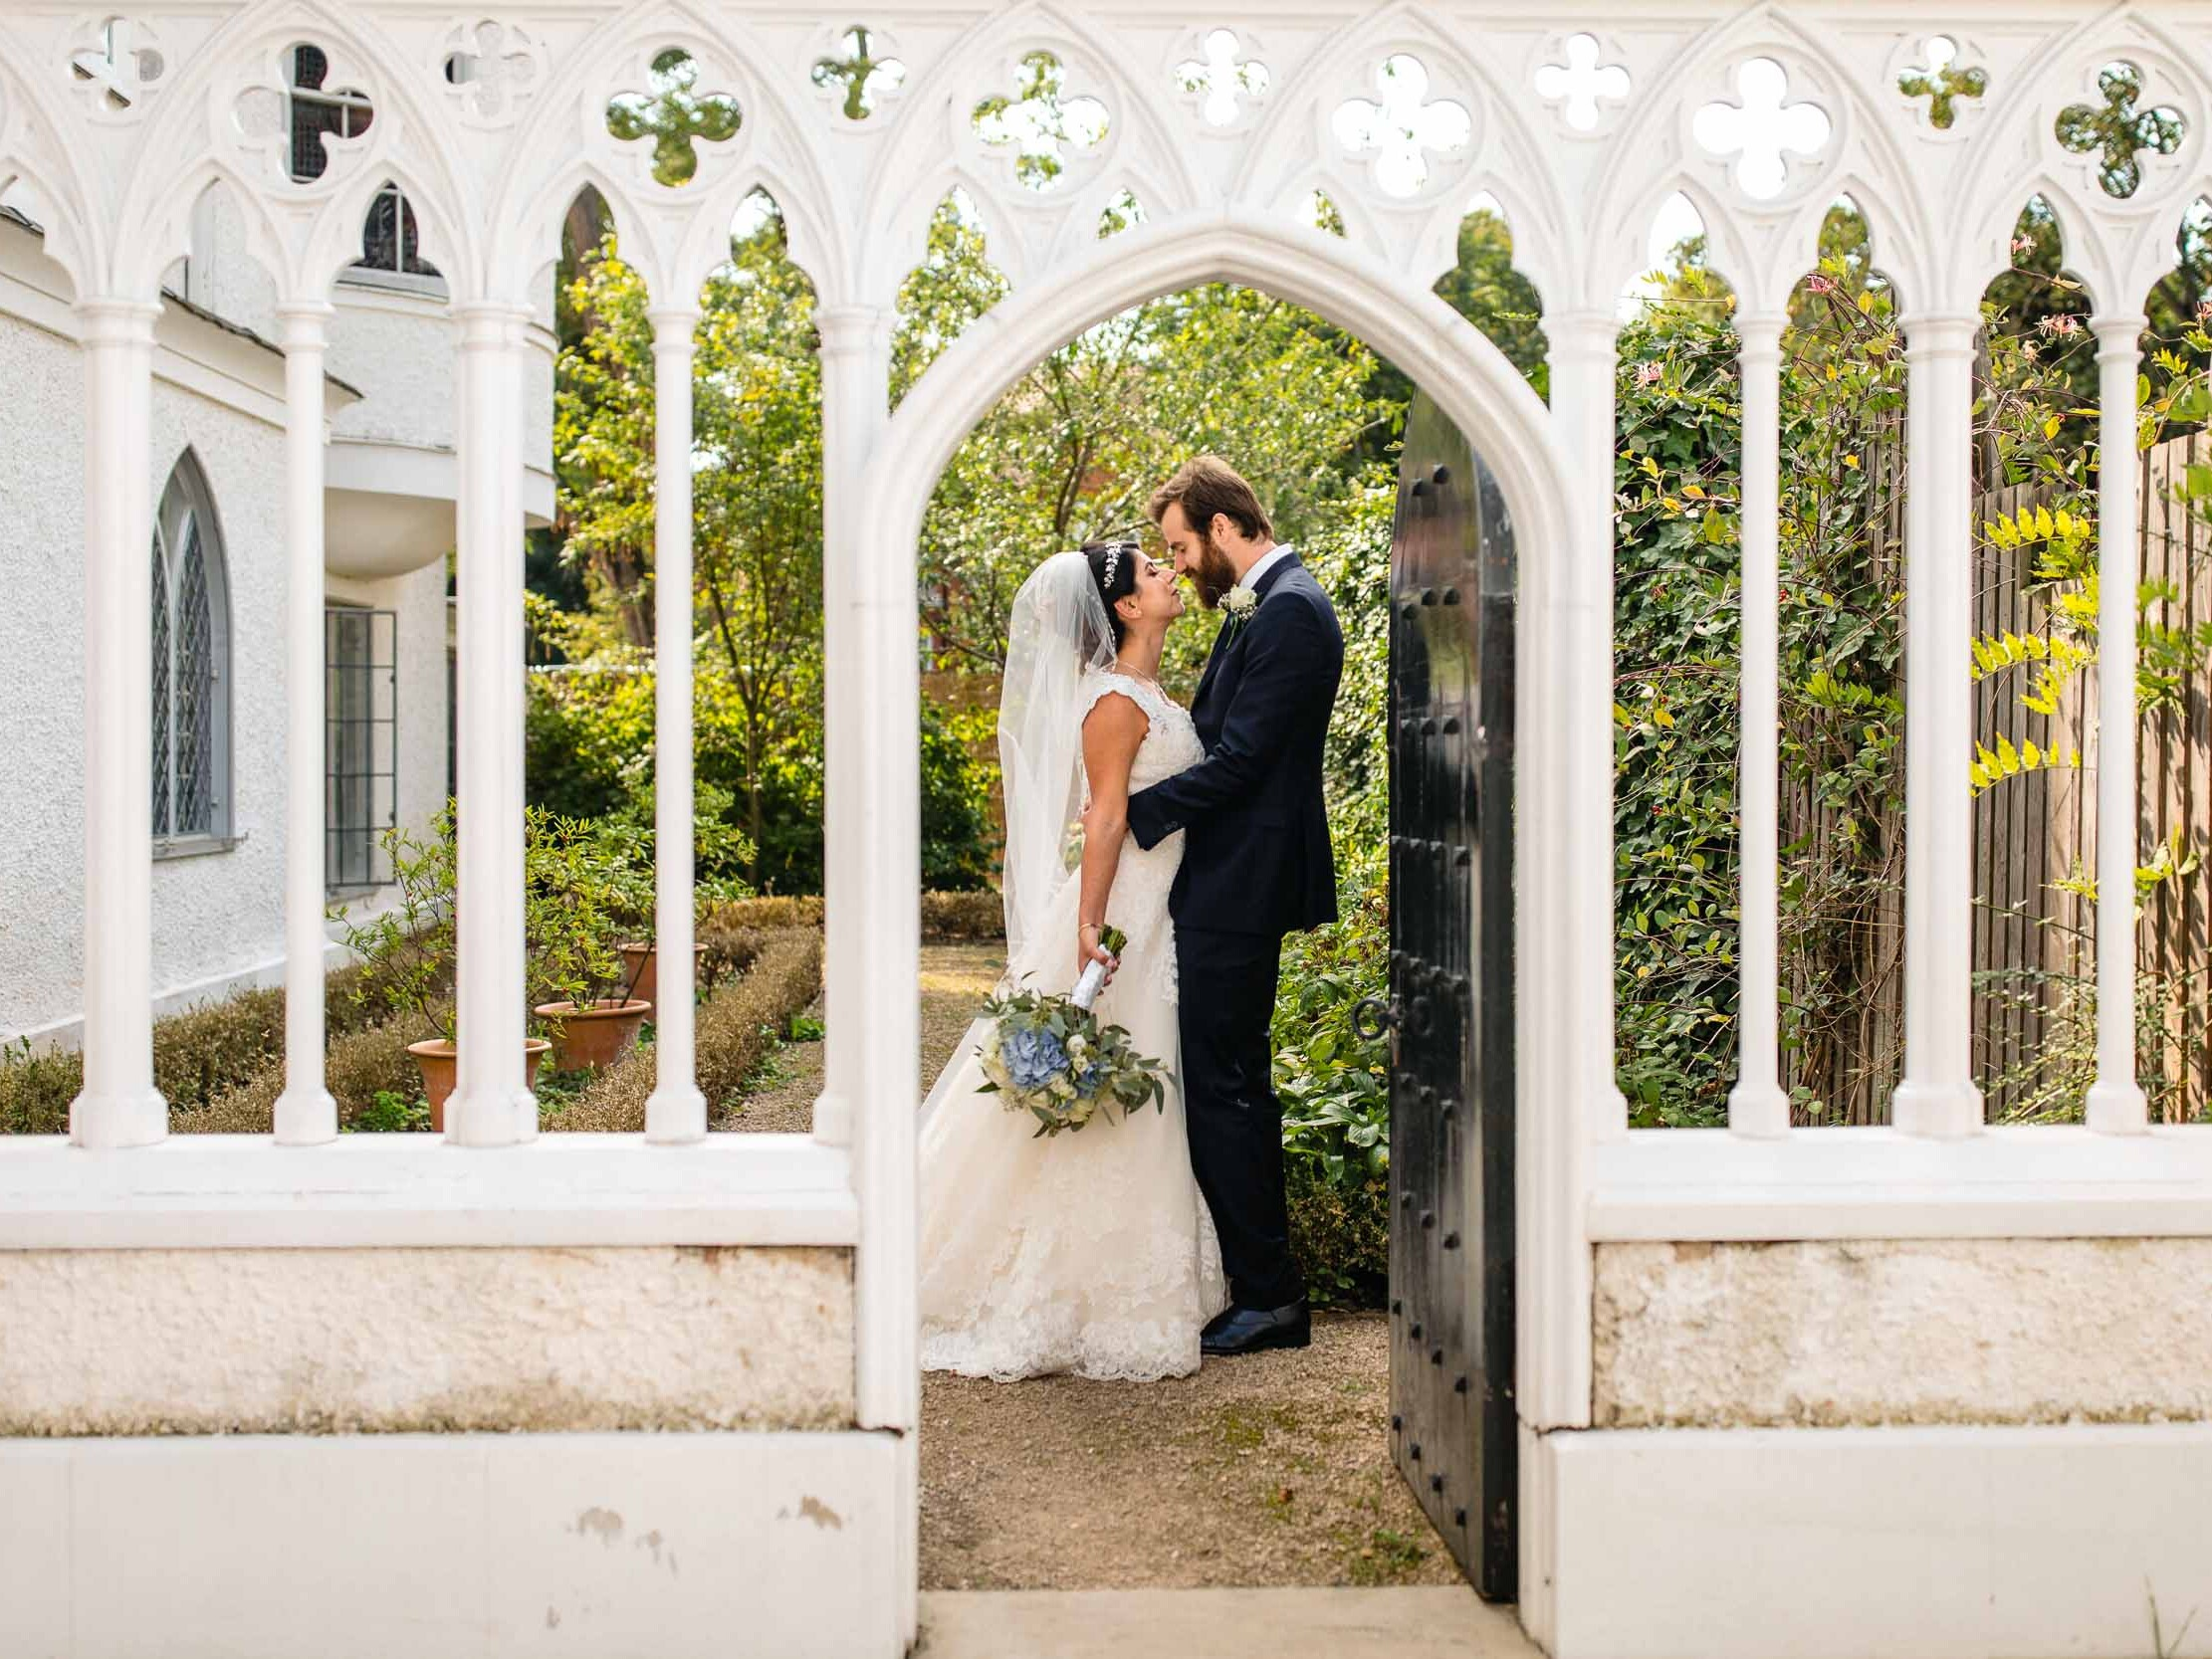 Strawberry Hill House weddings